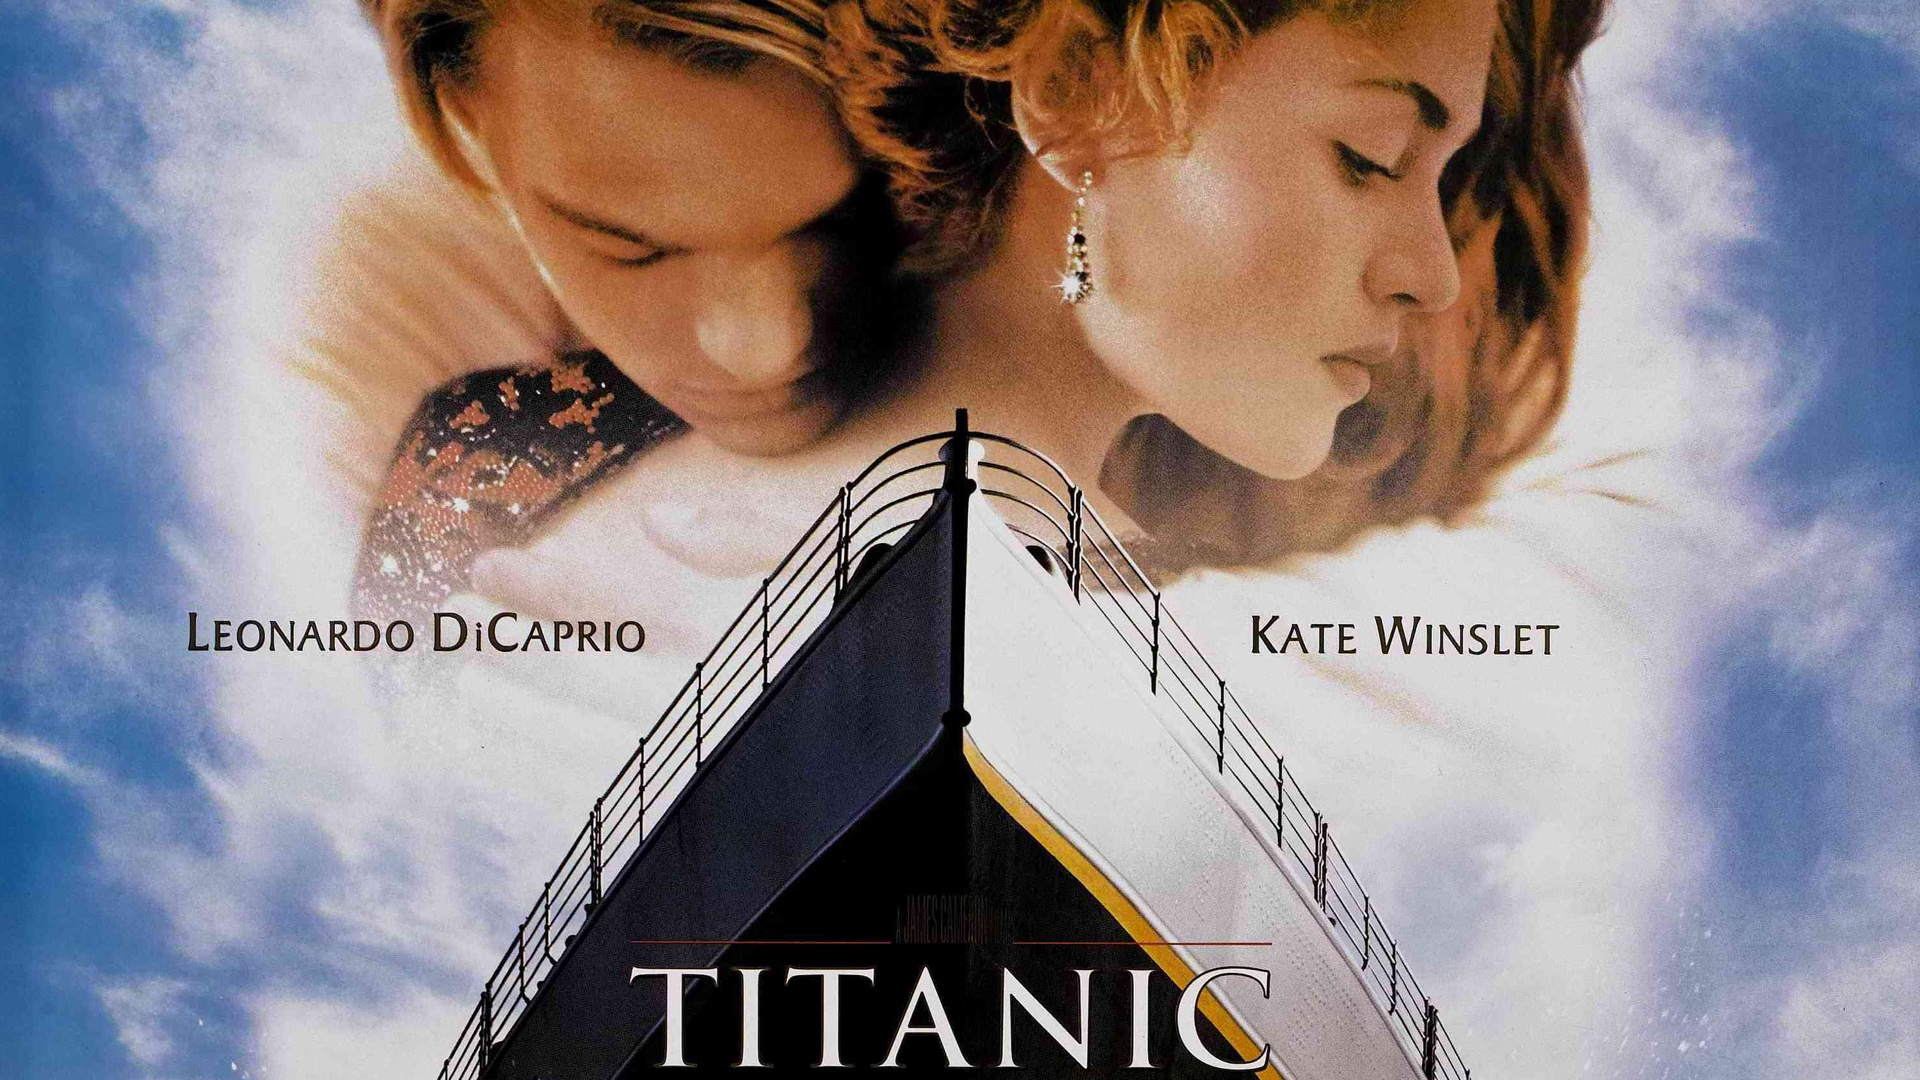 Description: Download Titanic Movie HD & Widescreen Movies Wallpaper from the ...